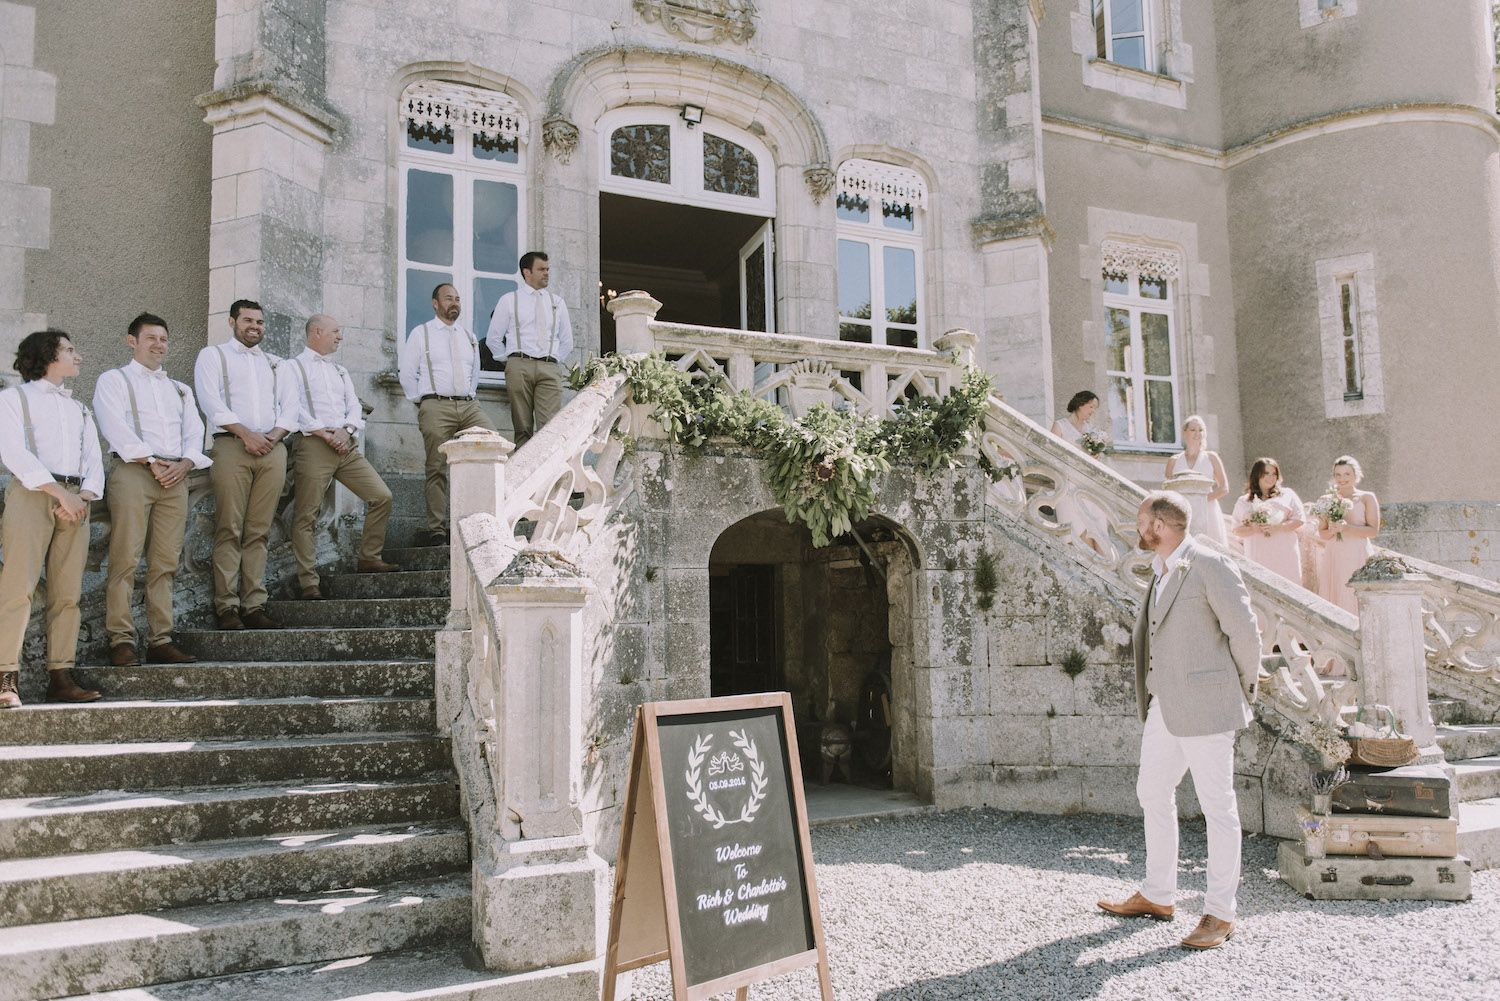 Escape To The Chateau Vintage Wedding In The Chateau De La Motte Husson Chateau Chateau Style Angel Strawbridge